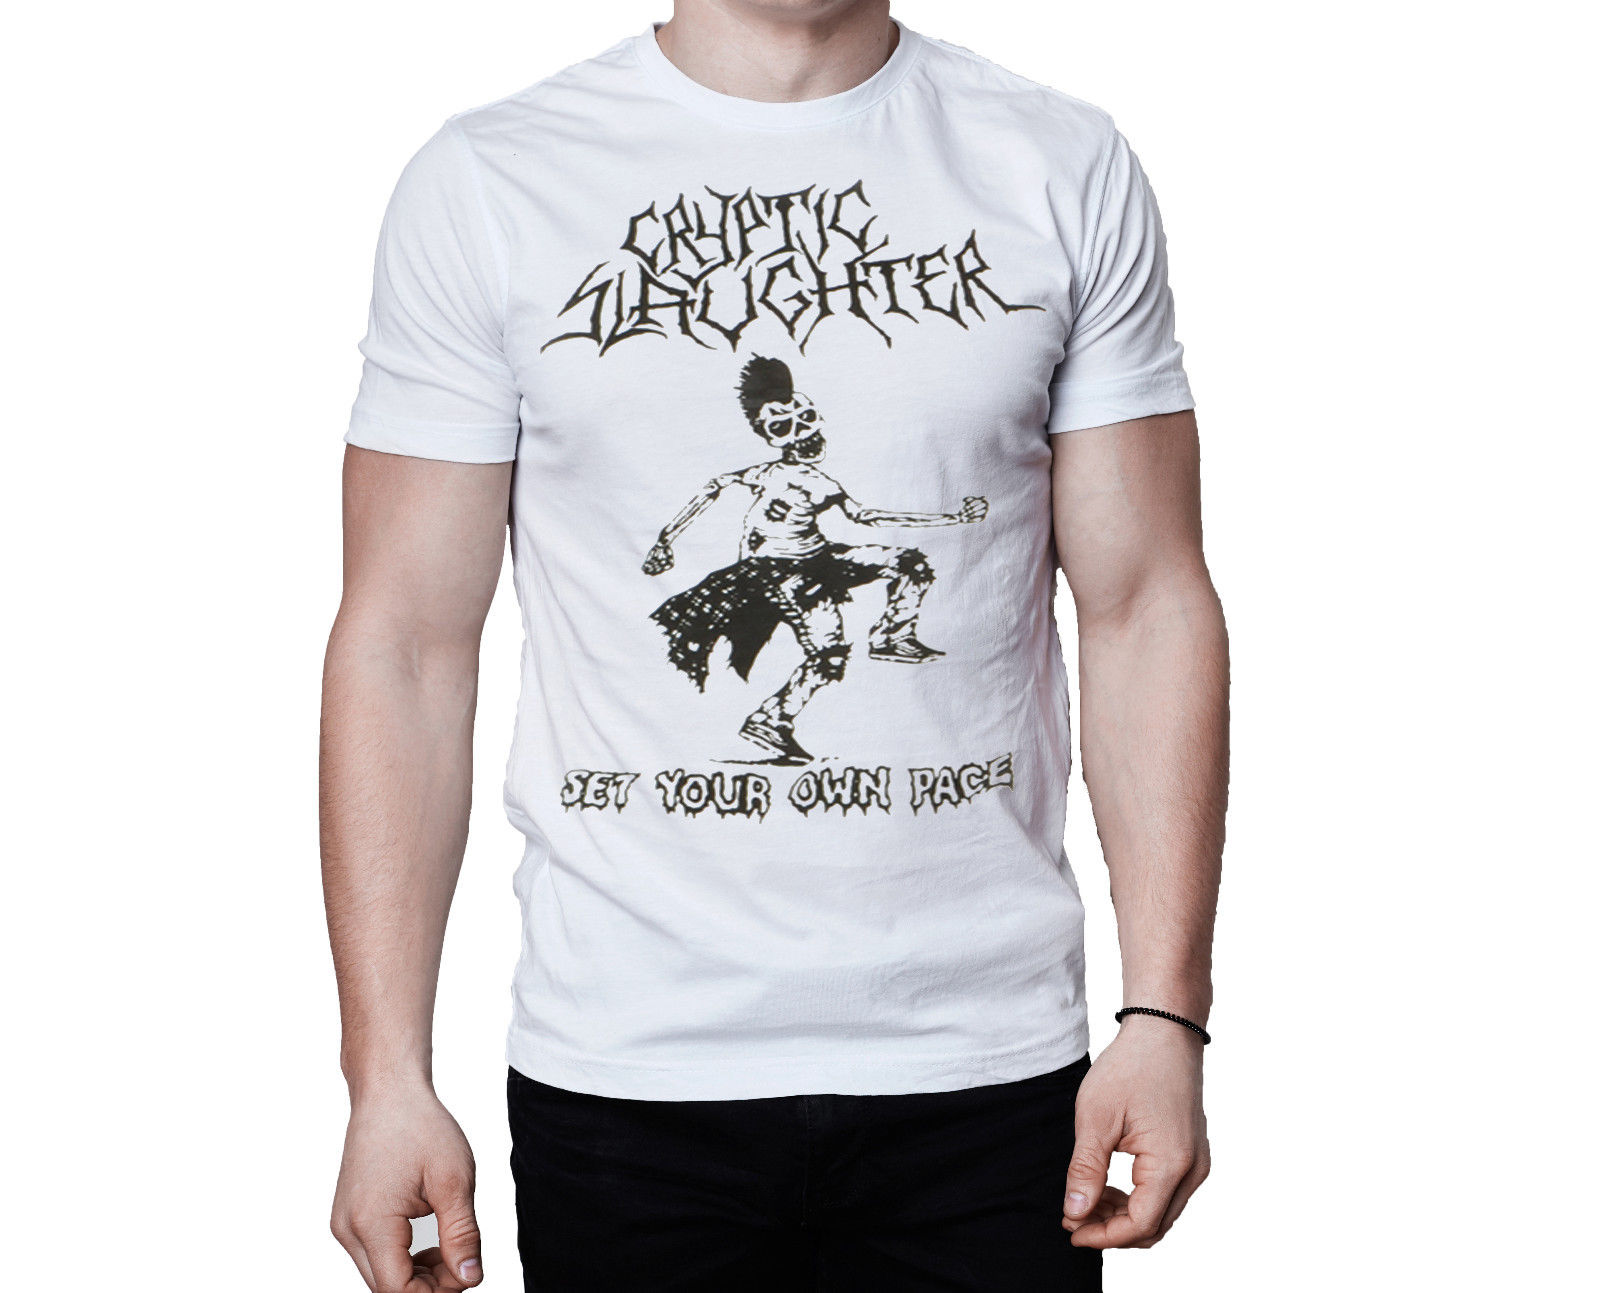 Cryptic Slaughter Set Your Own Pace Song Logo Inspired White T-Shirt Harajuku Pokemon Shirt Top Tee Funny O Neck T Shirt